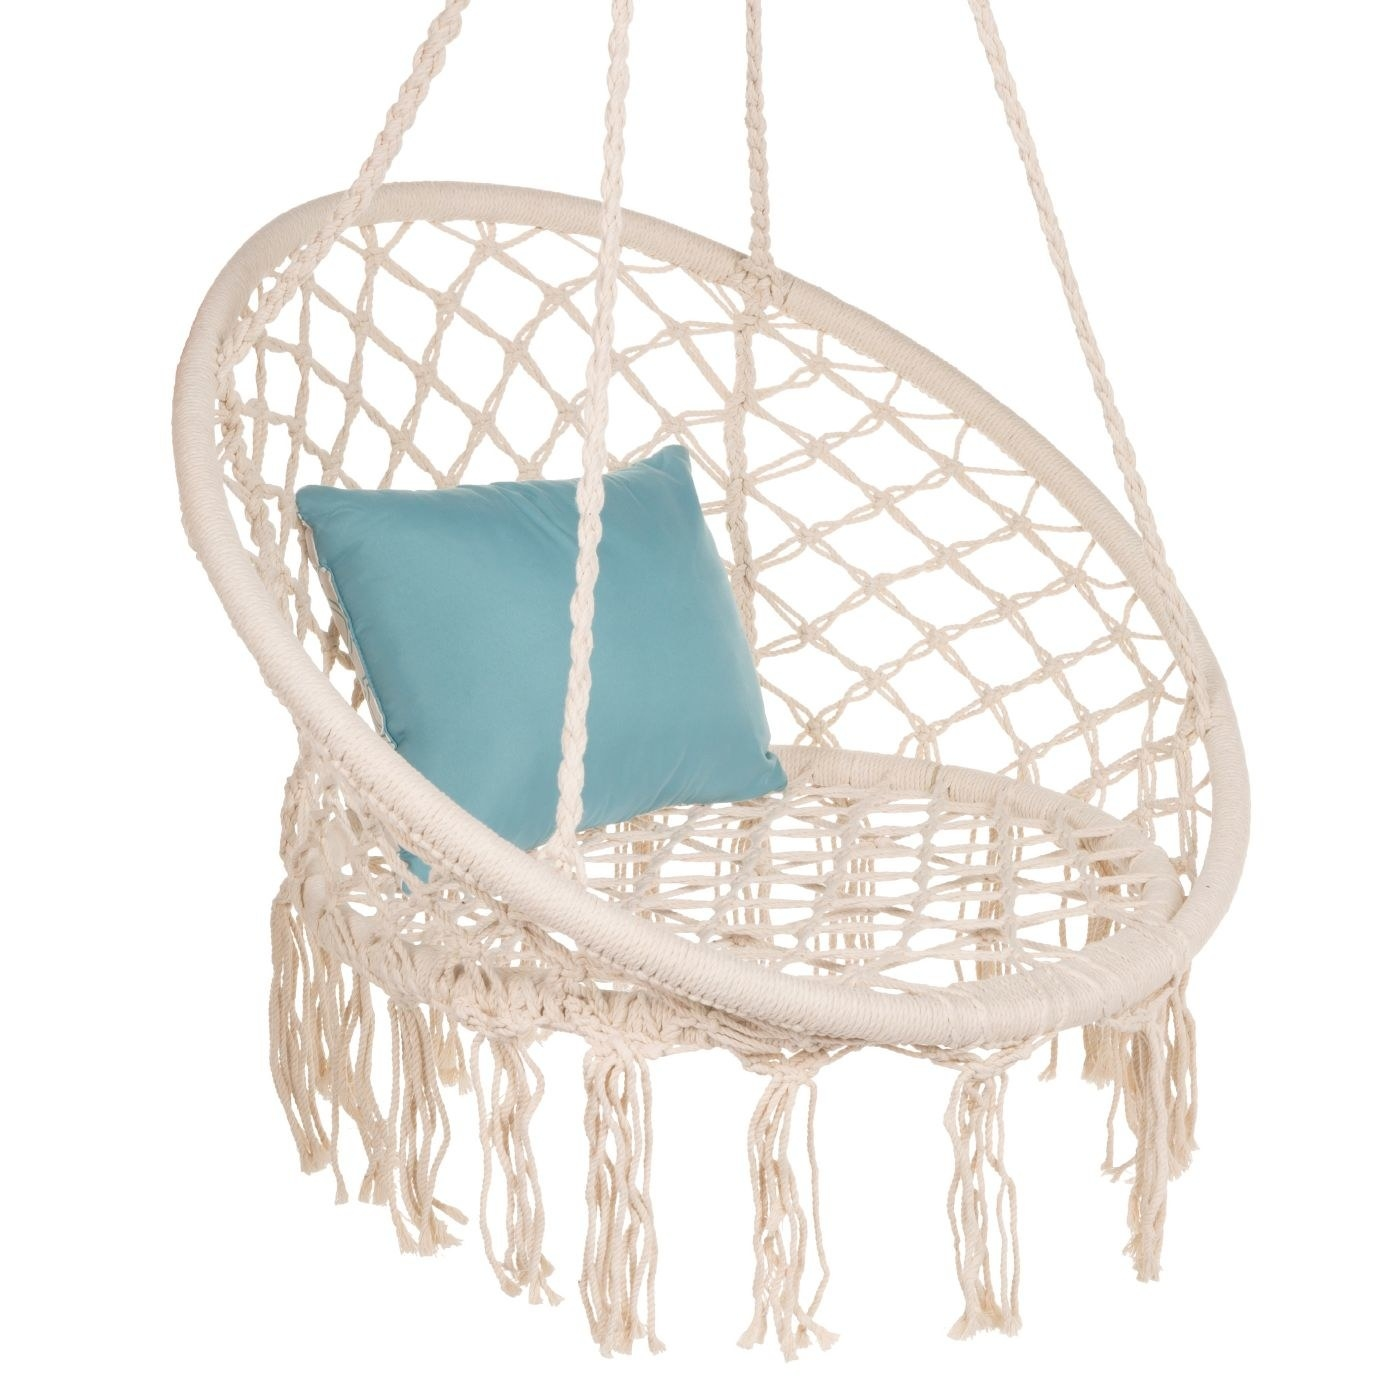 Cream chair swing with teal pillow